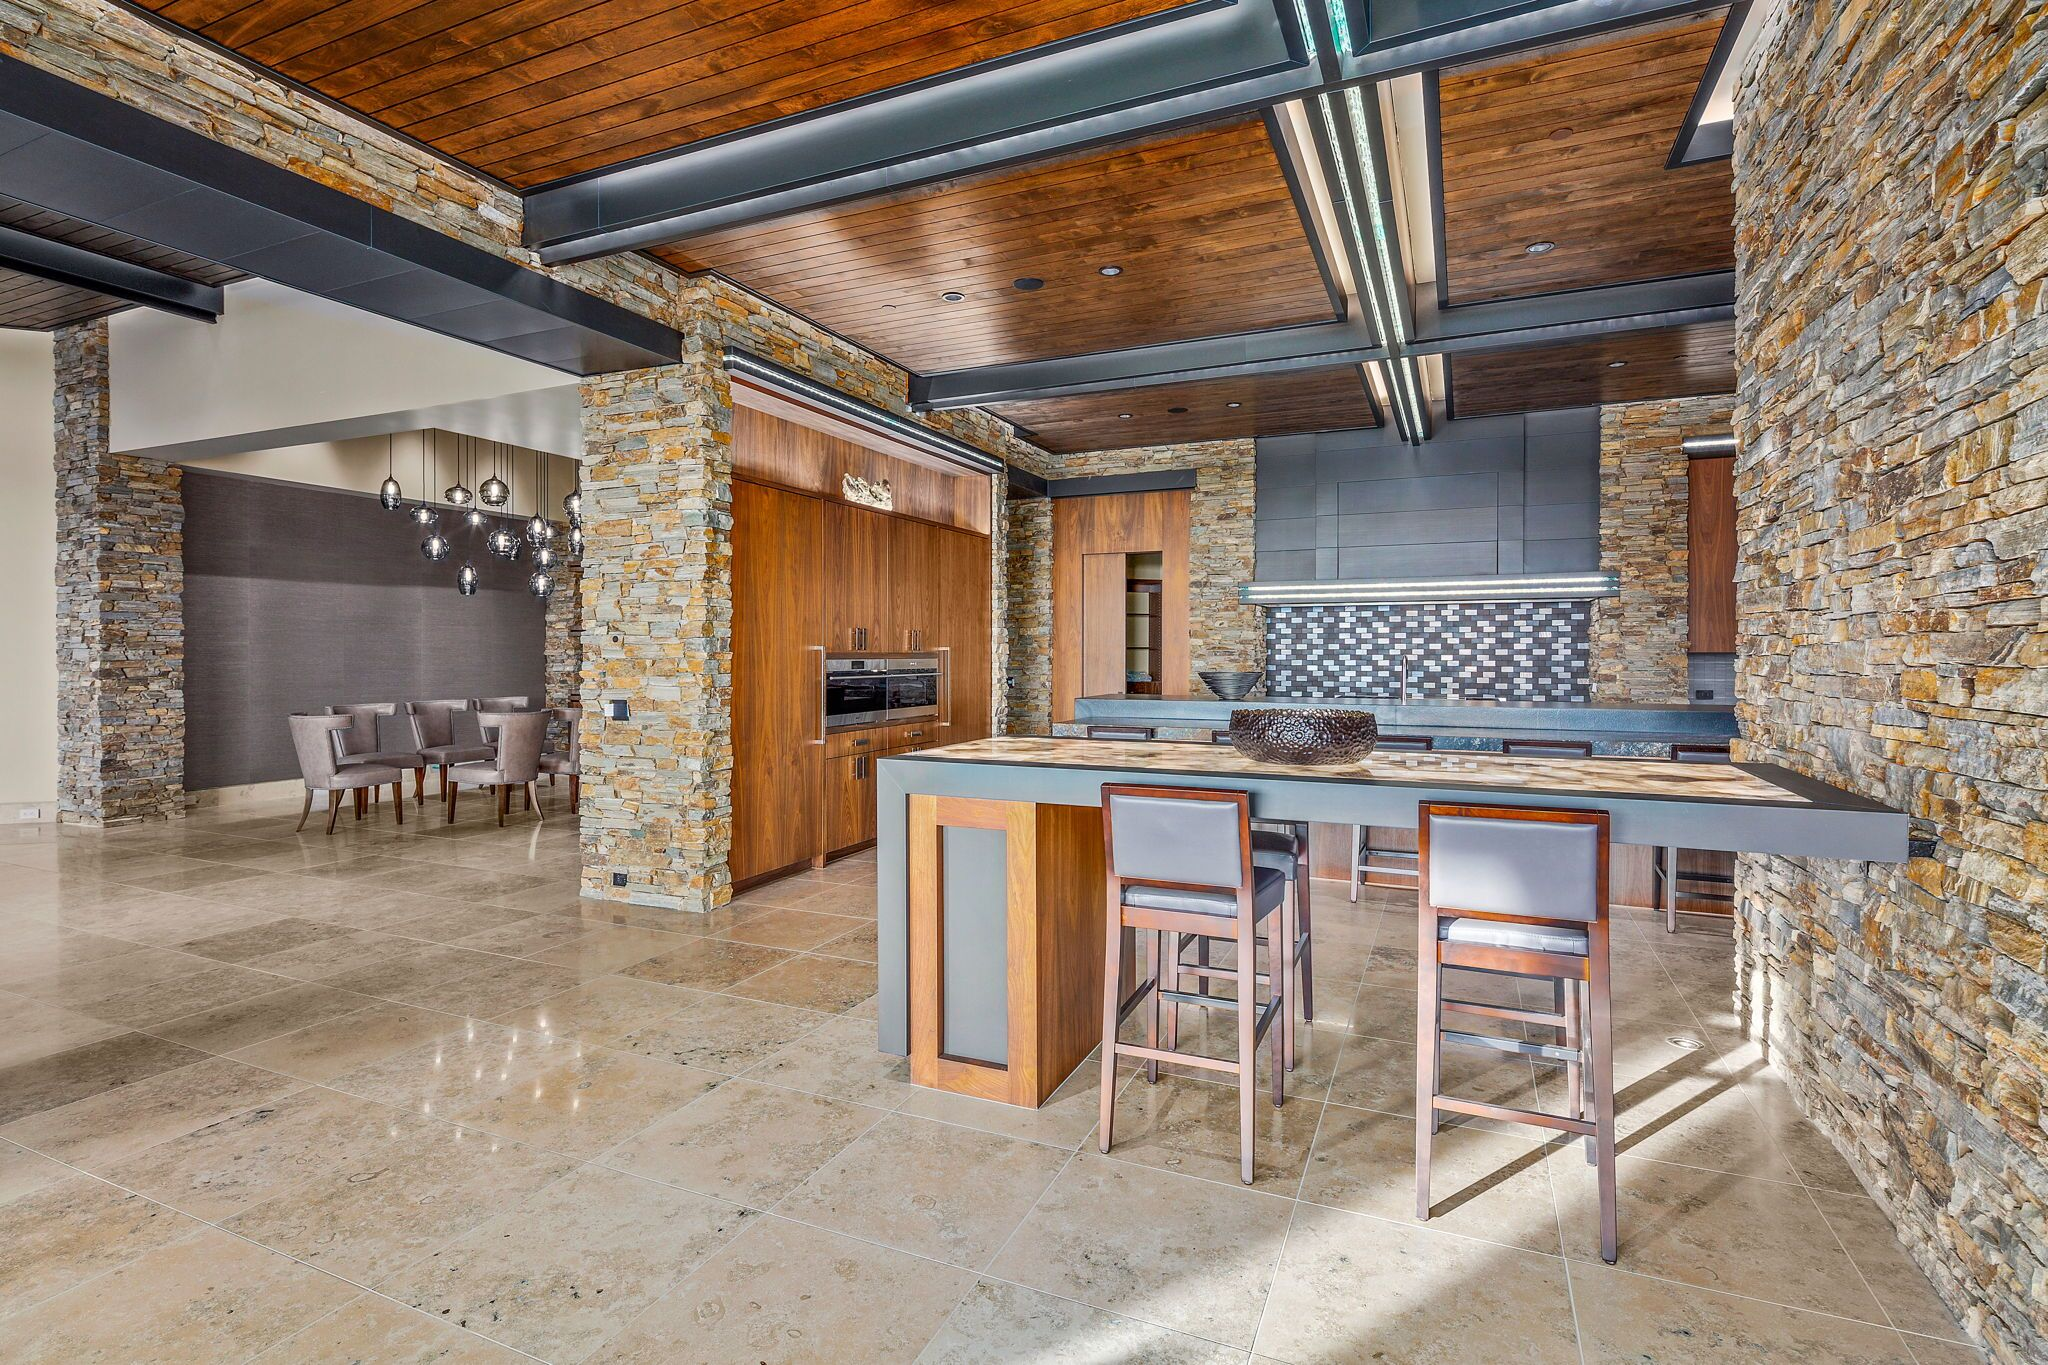 9300+E+Grapevine+Pass+Scottsdale-17-WebQuality-Kitchen+_7E+Dining+Room.jpg